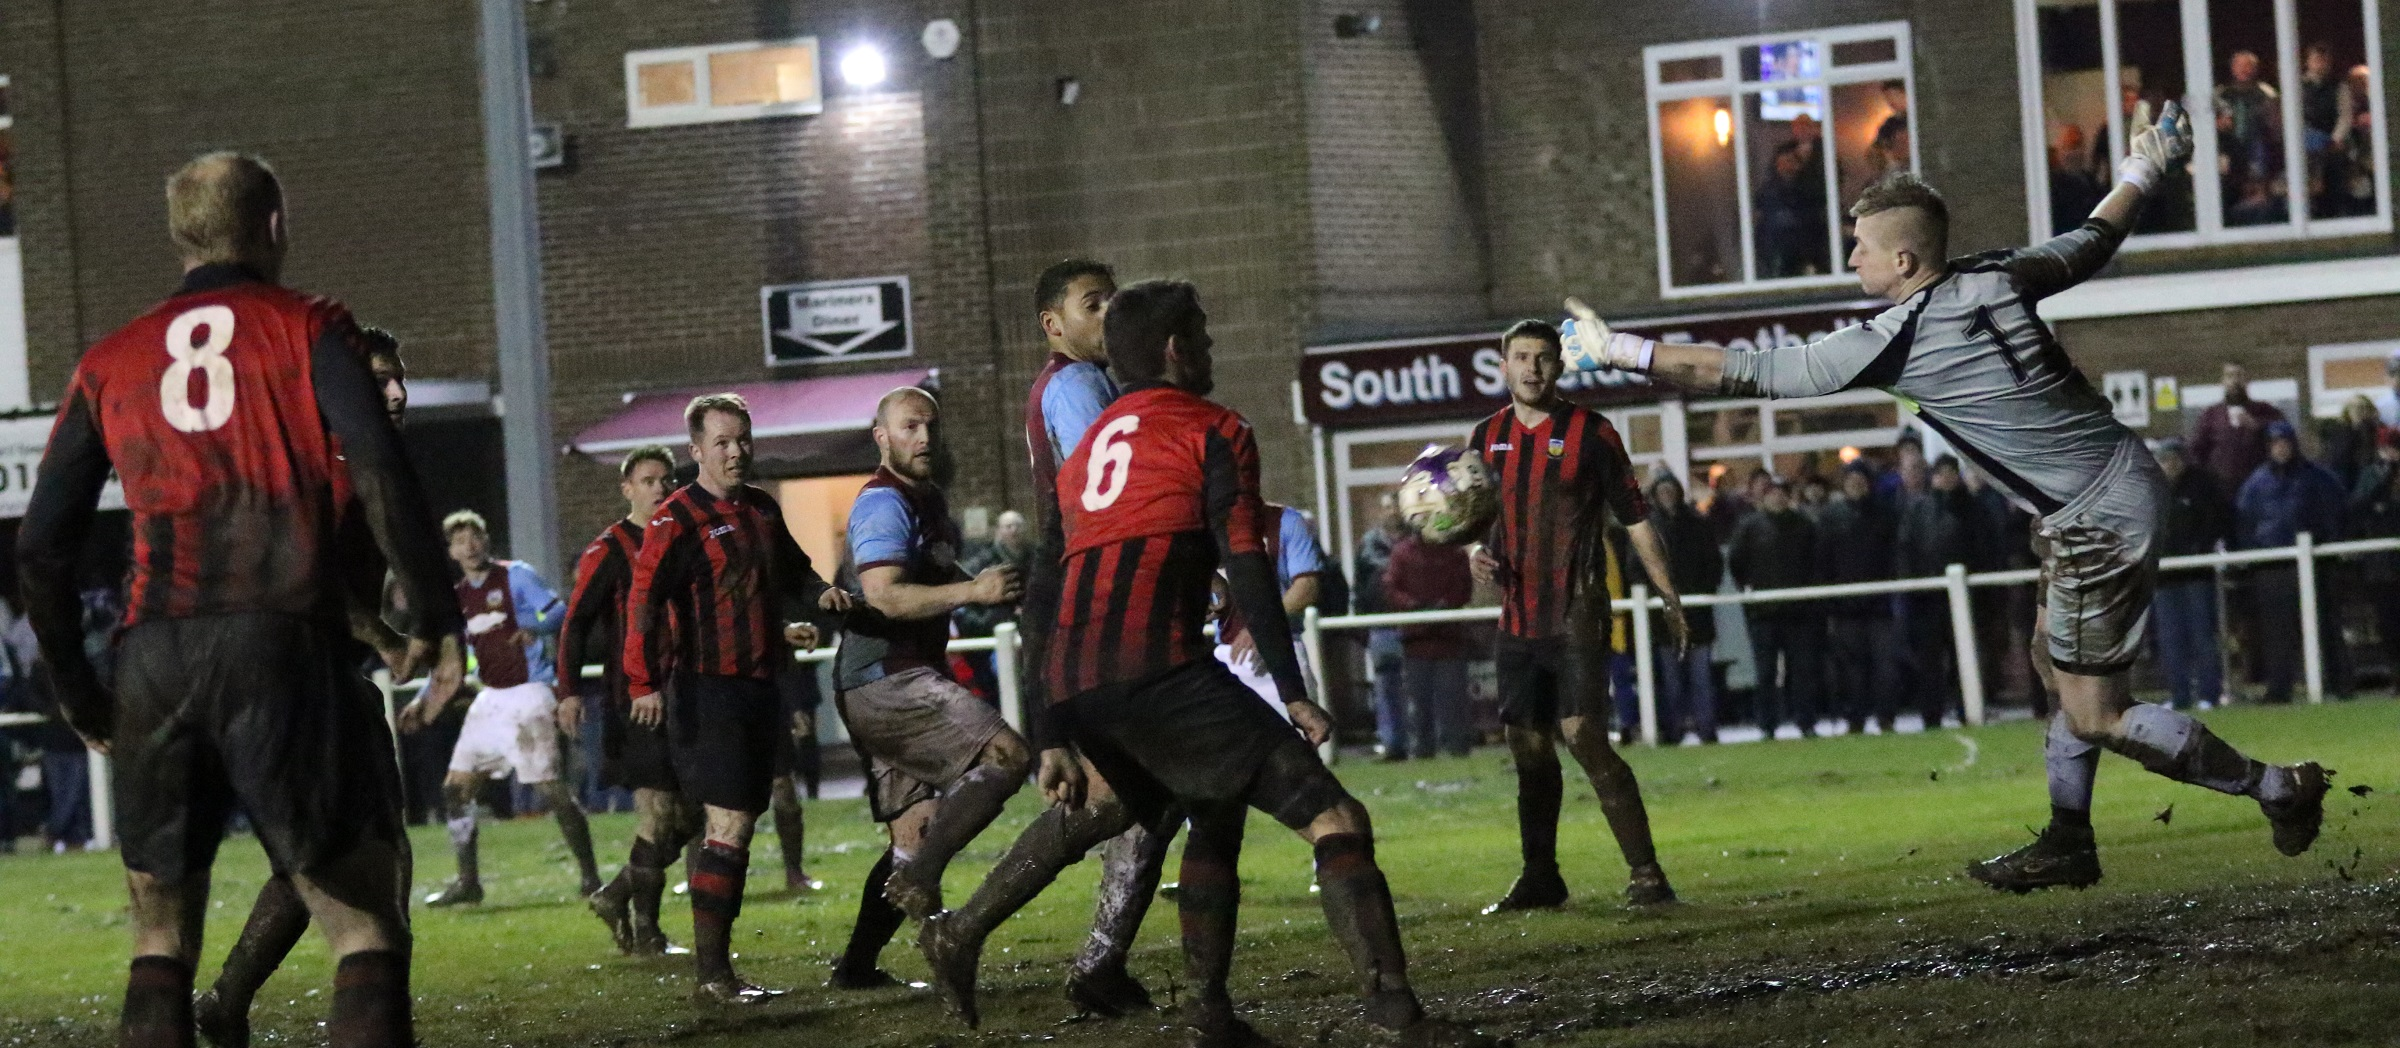 South Shields 5-2 Hebburn Town: Ernest Armstrong Memorial Cup